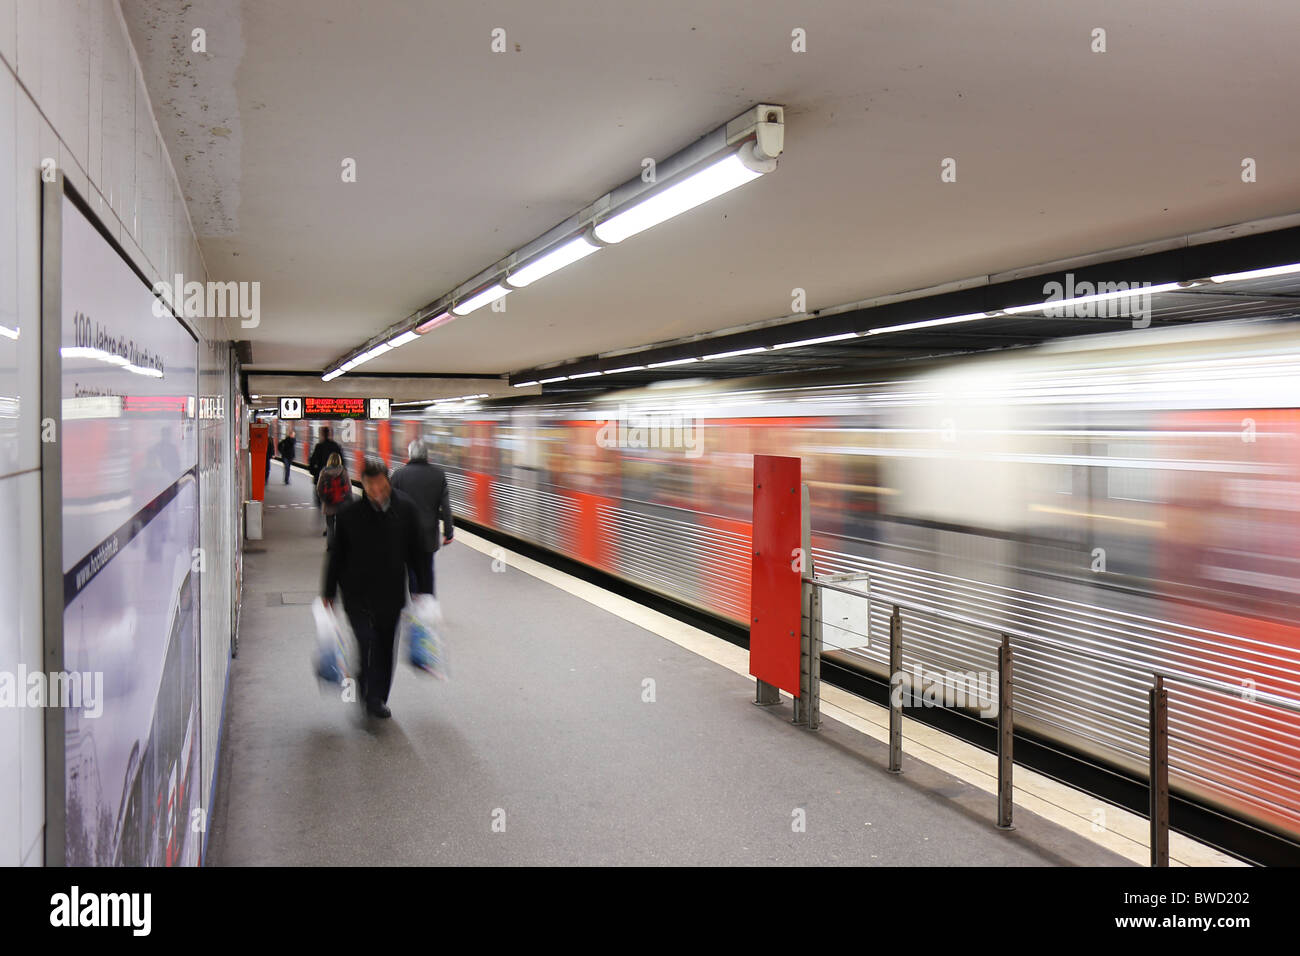 A long exposure of one of the platforms in the Rathaus U-Bahn station in Hamburg, showing moving train and people. Stock Photo